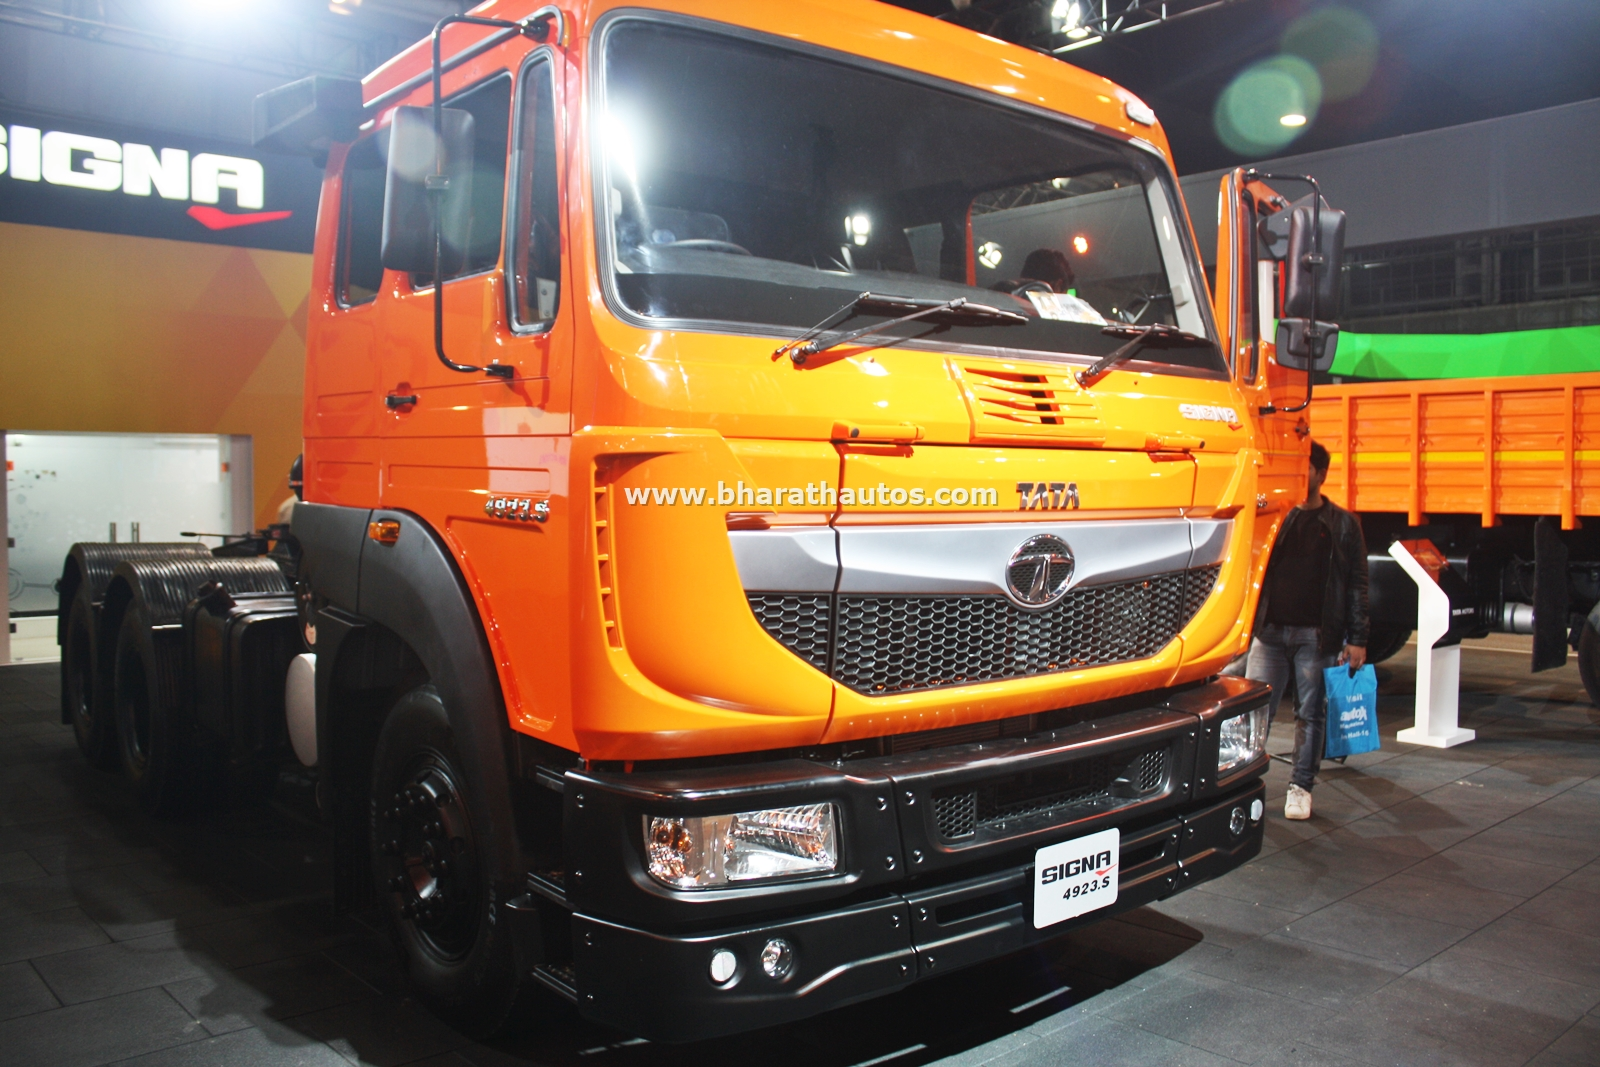 tata motors company products with Tata Motors Trucks Buses  Mercial Vehicles 2016 Auto Expo on Article 32878 Tata Motors Launches Prima Truck Range In Uae likewise Volkswagen Taigun And Tata Nexon To  e In 2015 12384 likewise Tata Motors Trucks Buses  mercial Vehicles 2016 Auto Expo further Who Owns Who besides Up ing Tata Cars India.